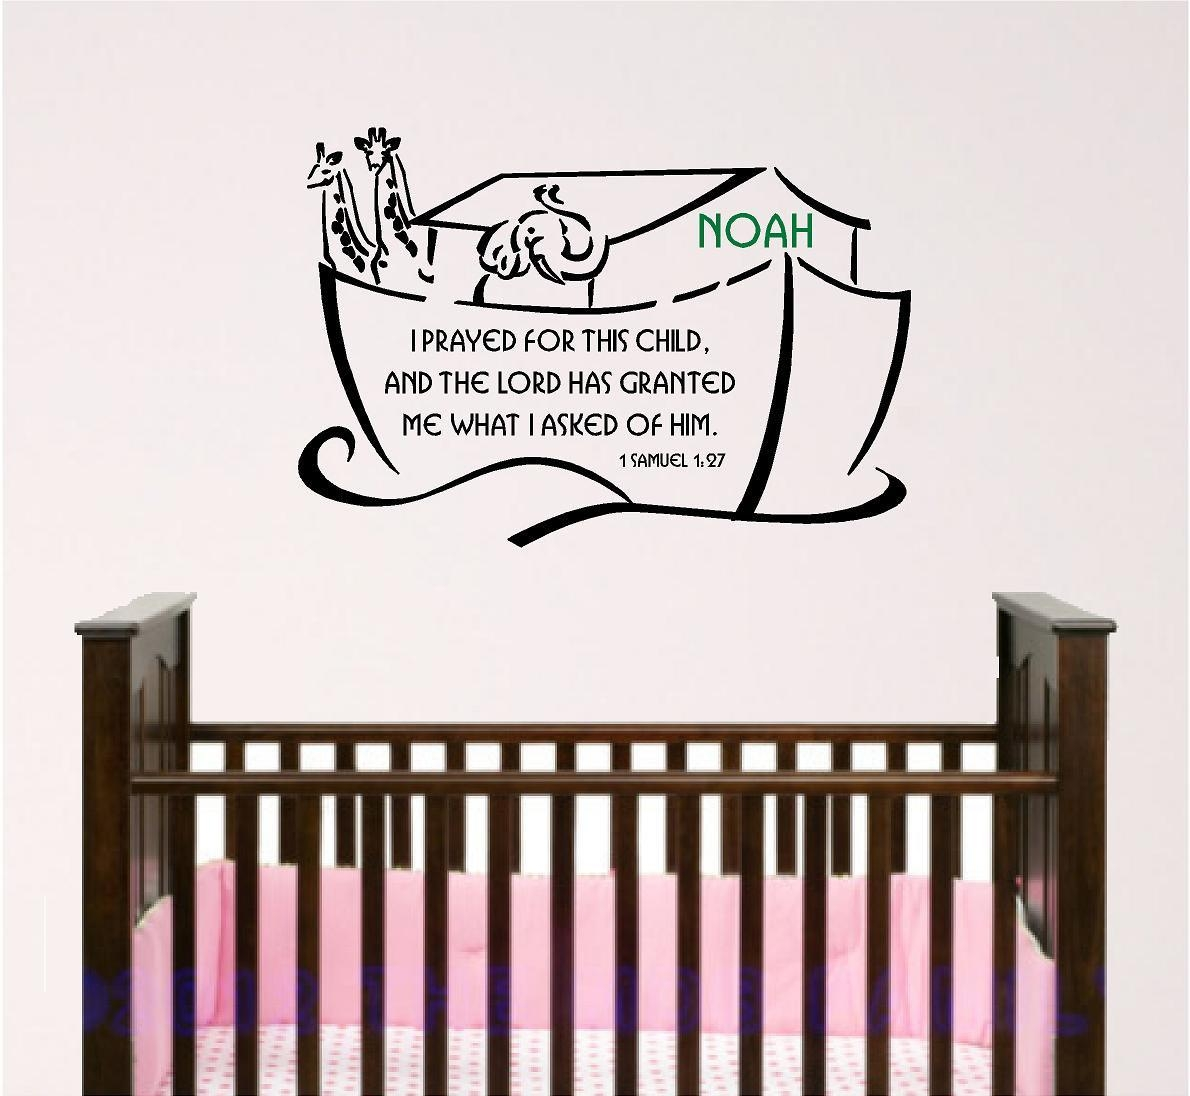 Scripture Wall Decal Noahs Ark Nursery Bible Verse Wall Art Pertaining To For This Child I Prayed Wall Art (View 13 of 20)